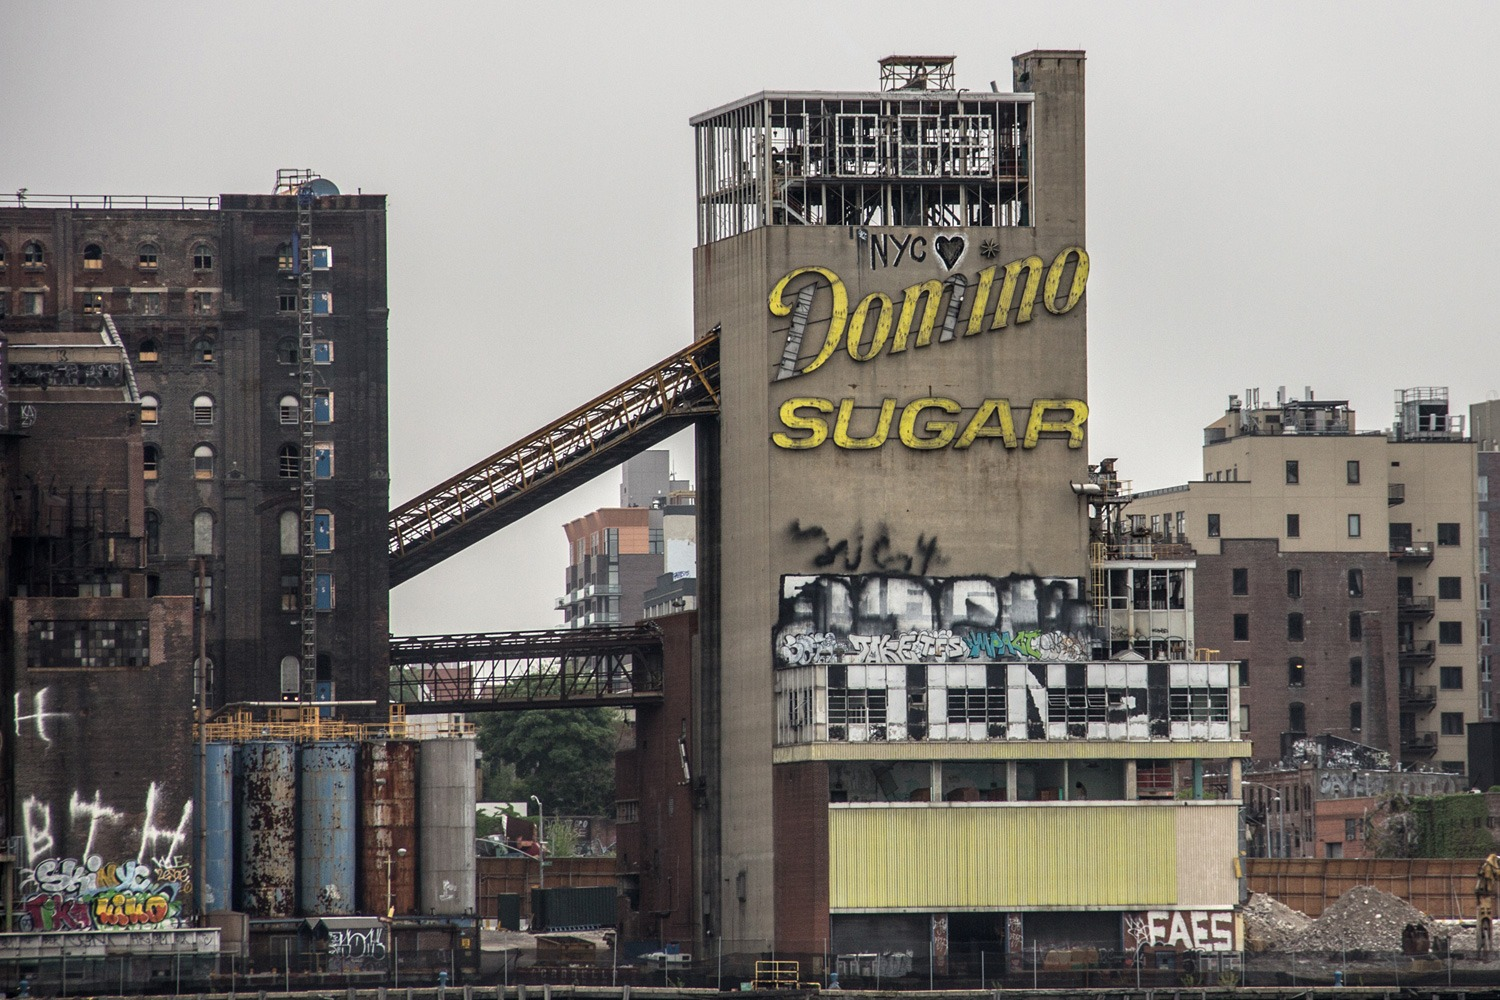 Brooklyn Domino Sugar Factory - Abandoned Places